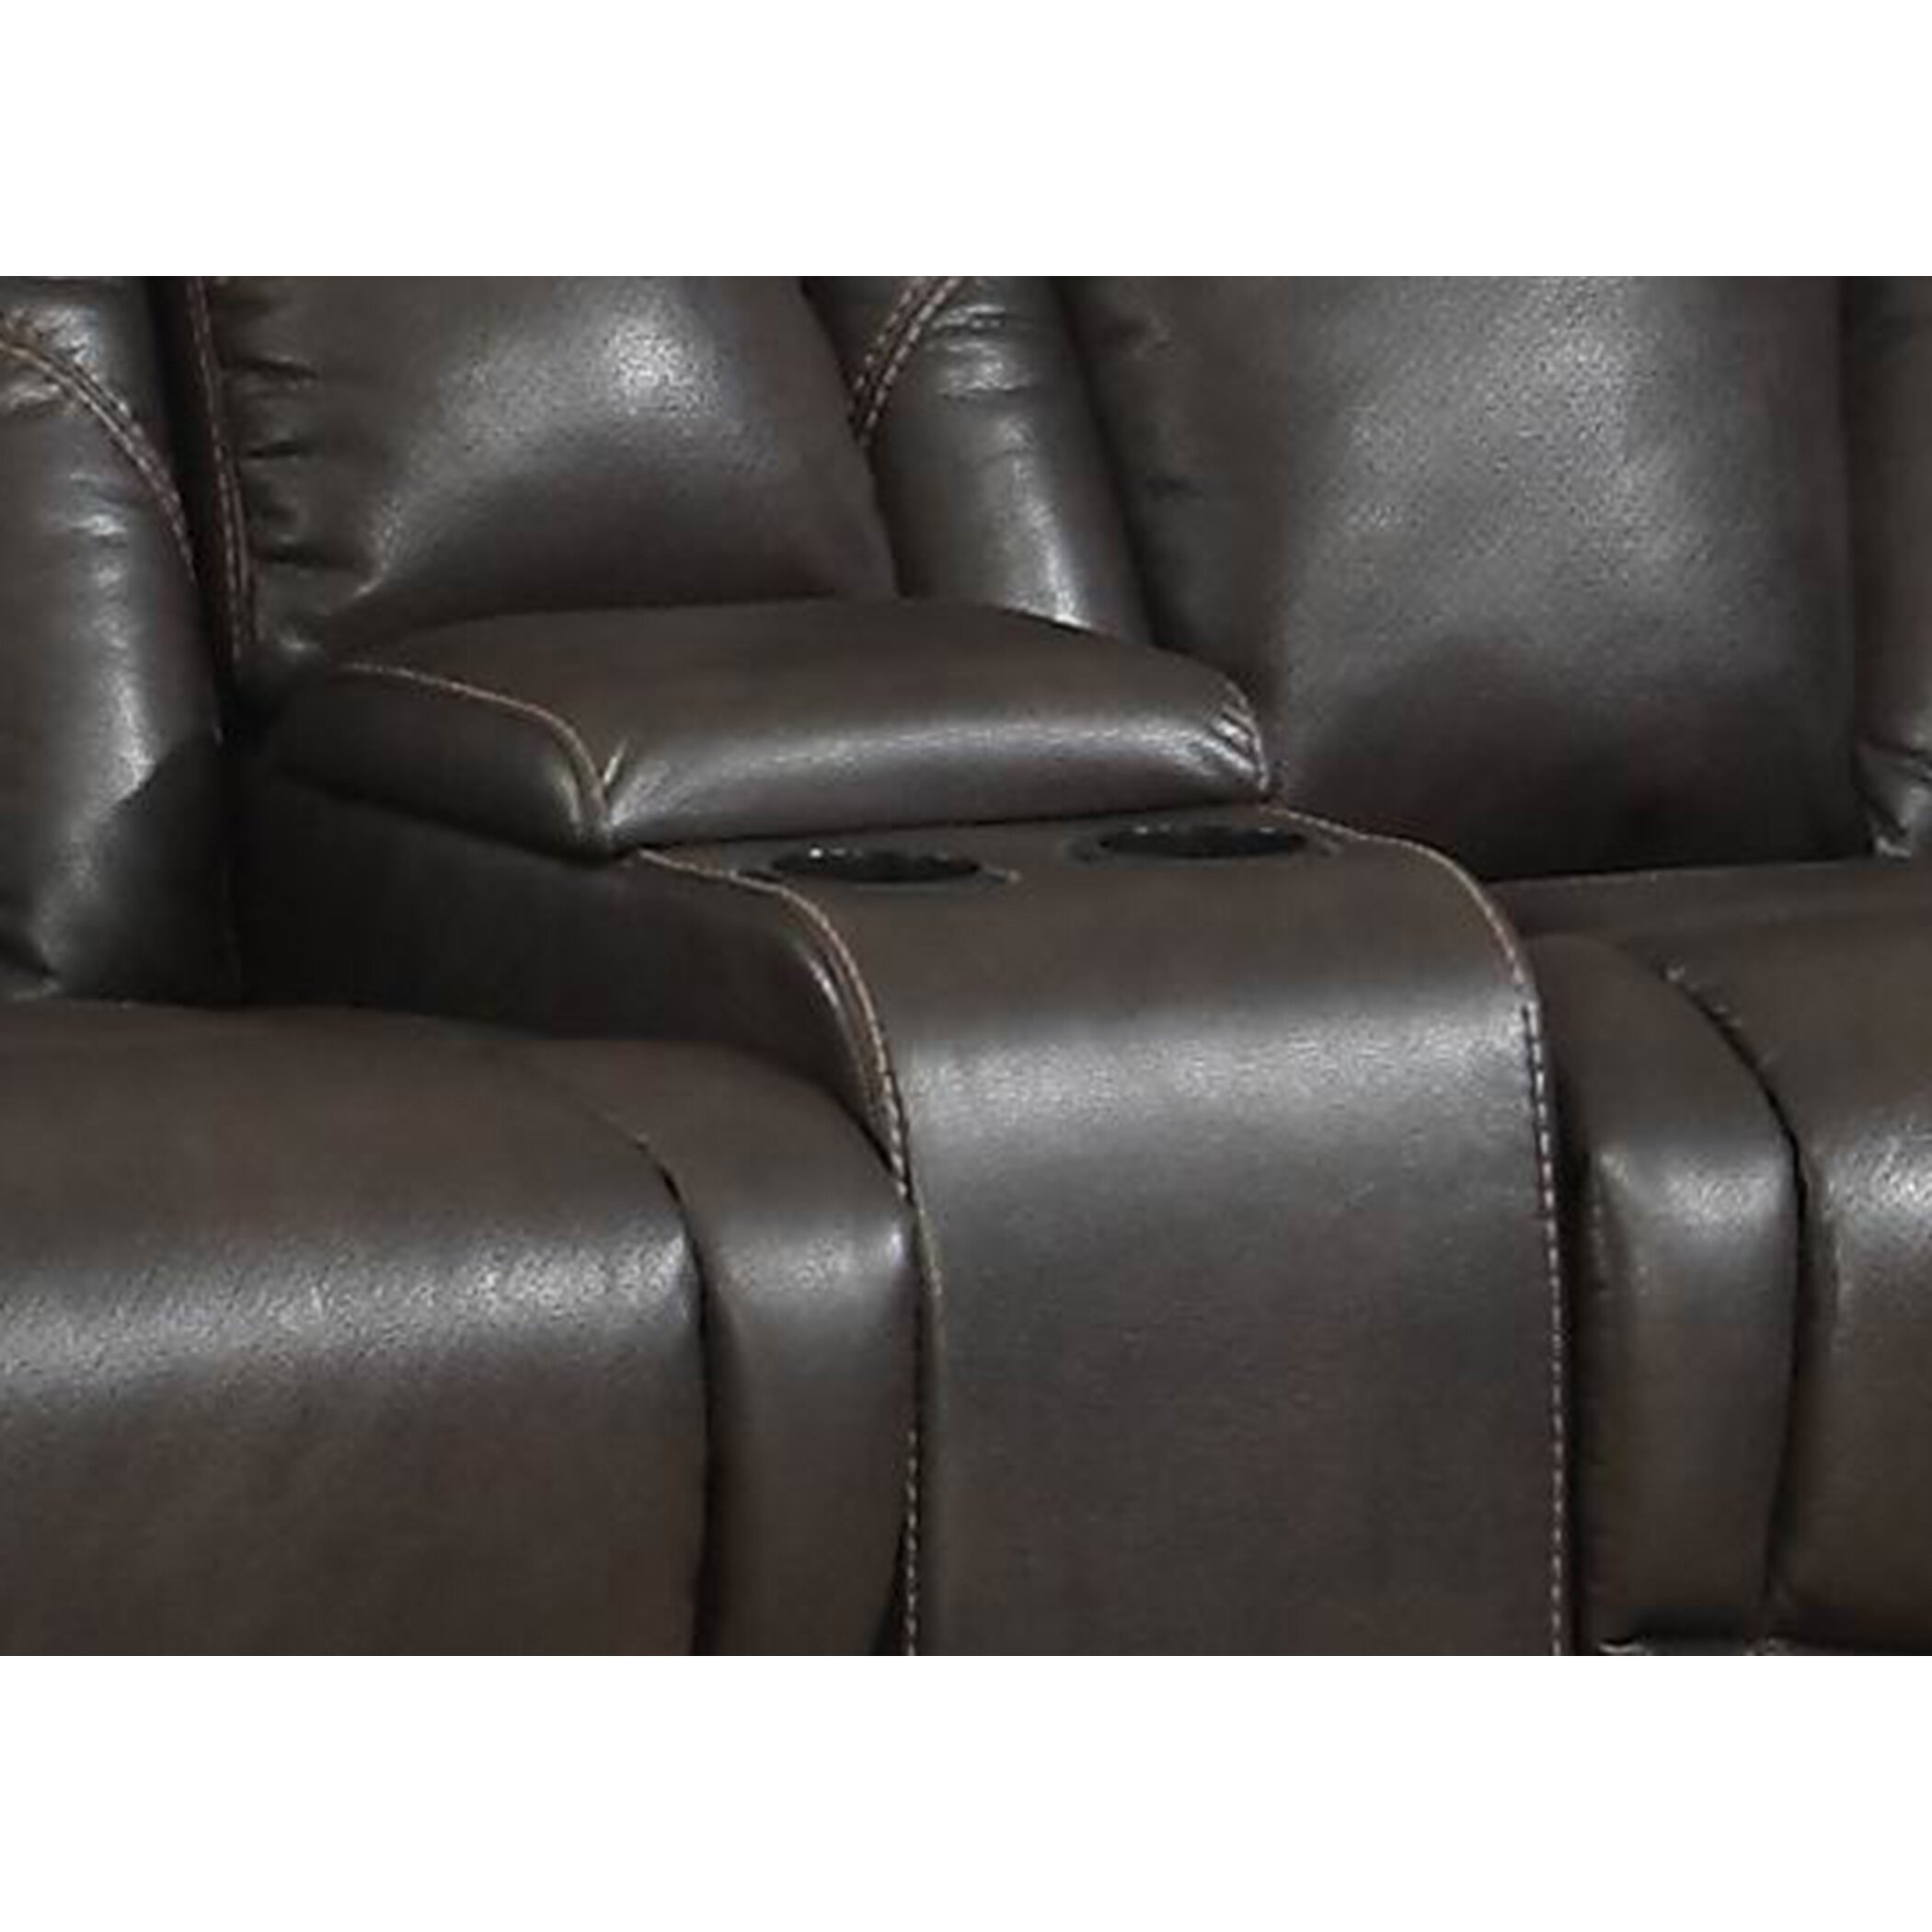 ac pacific otto transitional reclining loveseat with storage console and cup holders reviews